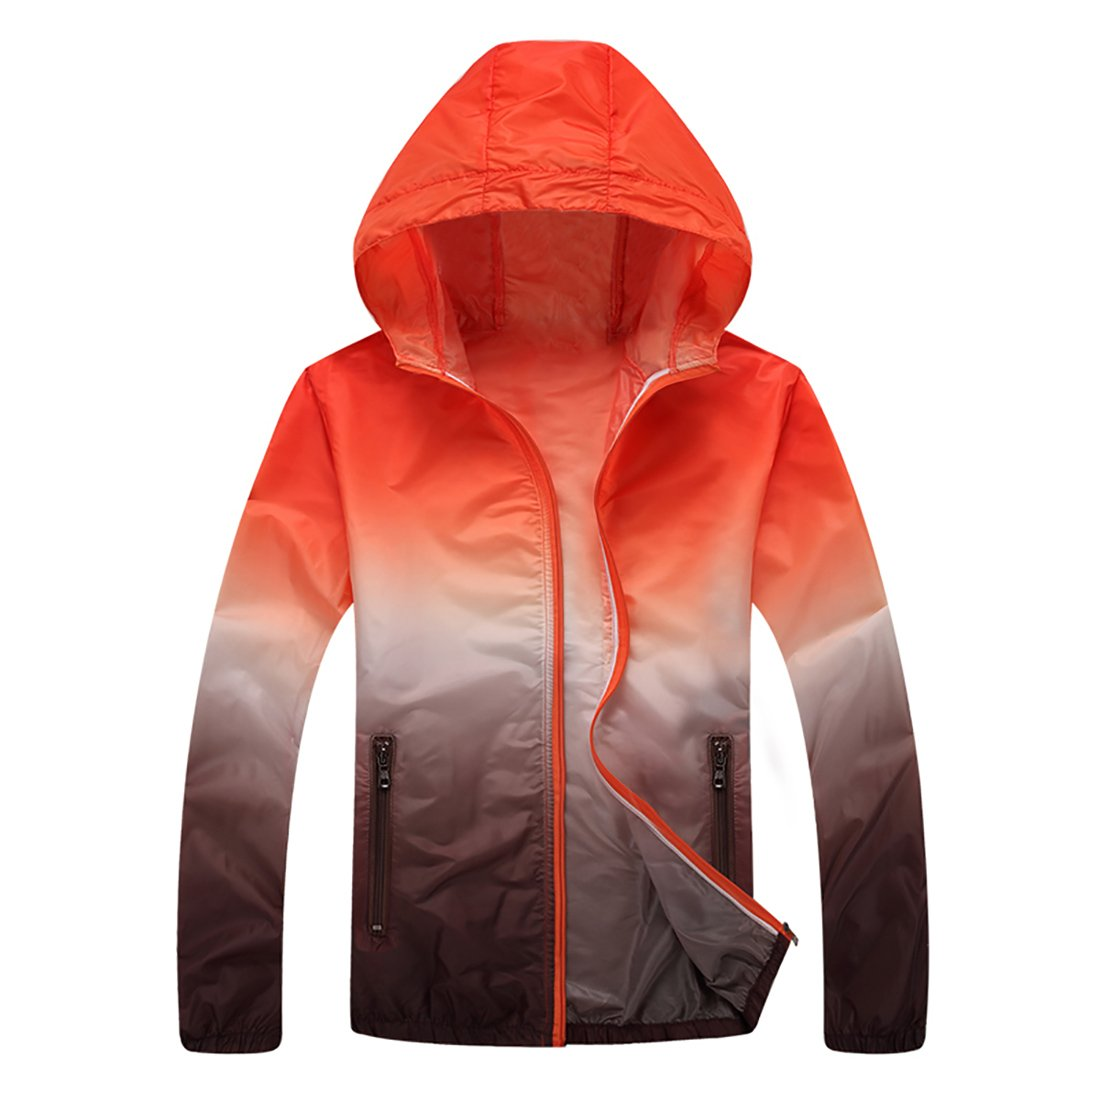 Panegy Unisex Sunscreen Hoodie Jacket Lightweight Drys Quickly Zipper Breathable Thin Sunblock Suit Rain Coat Orange Brown Large by Panegy (Image #1)